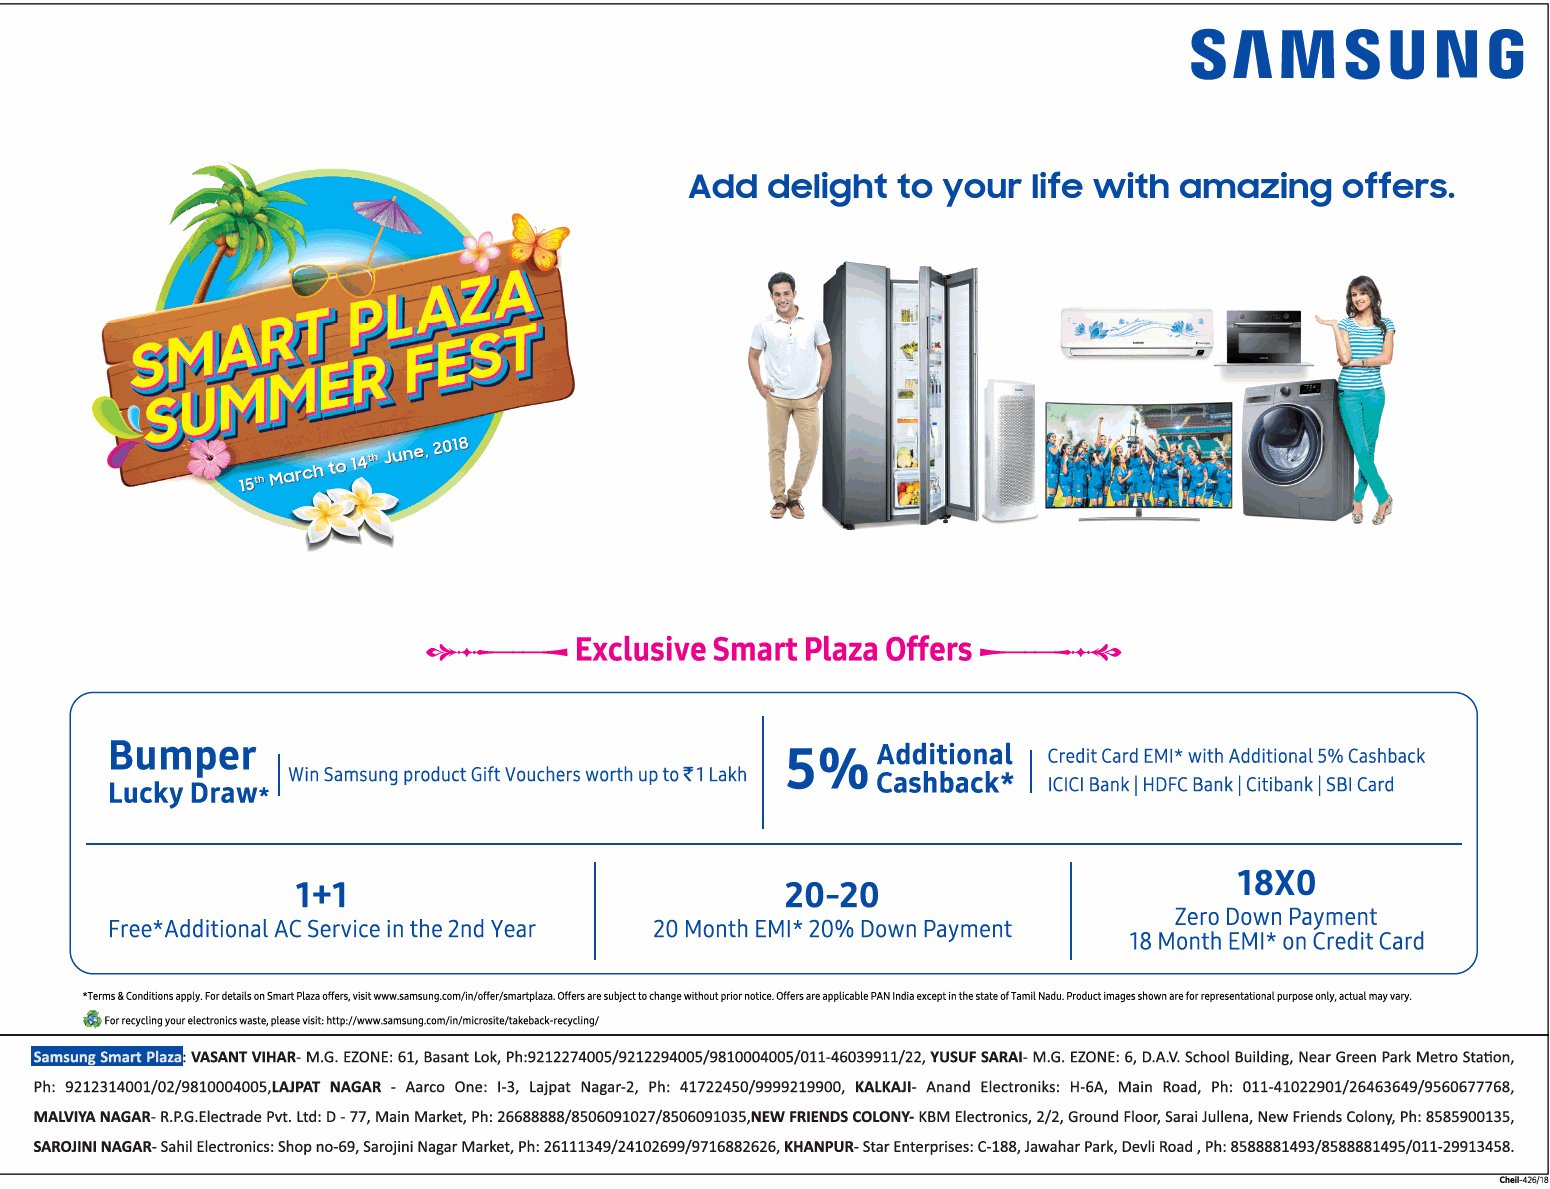 Samsung Home Appliances - Exciting Offers